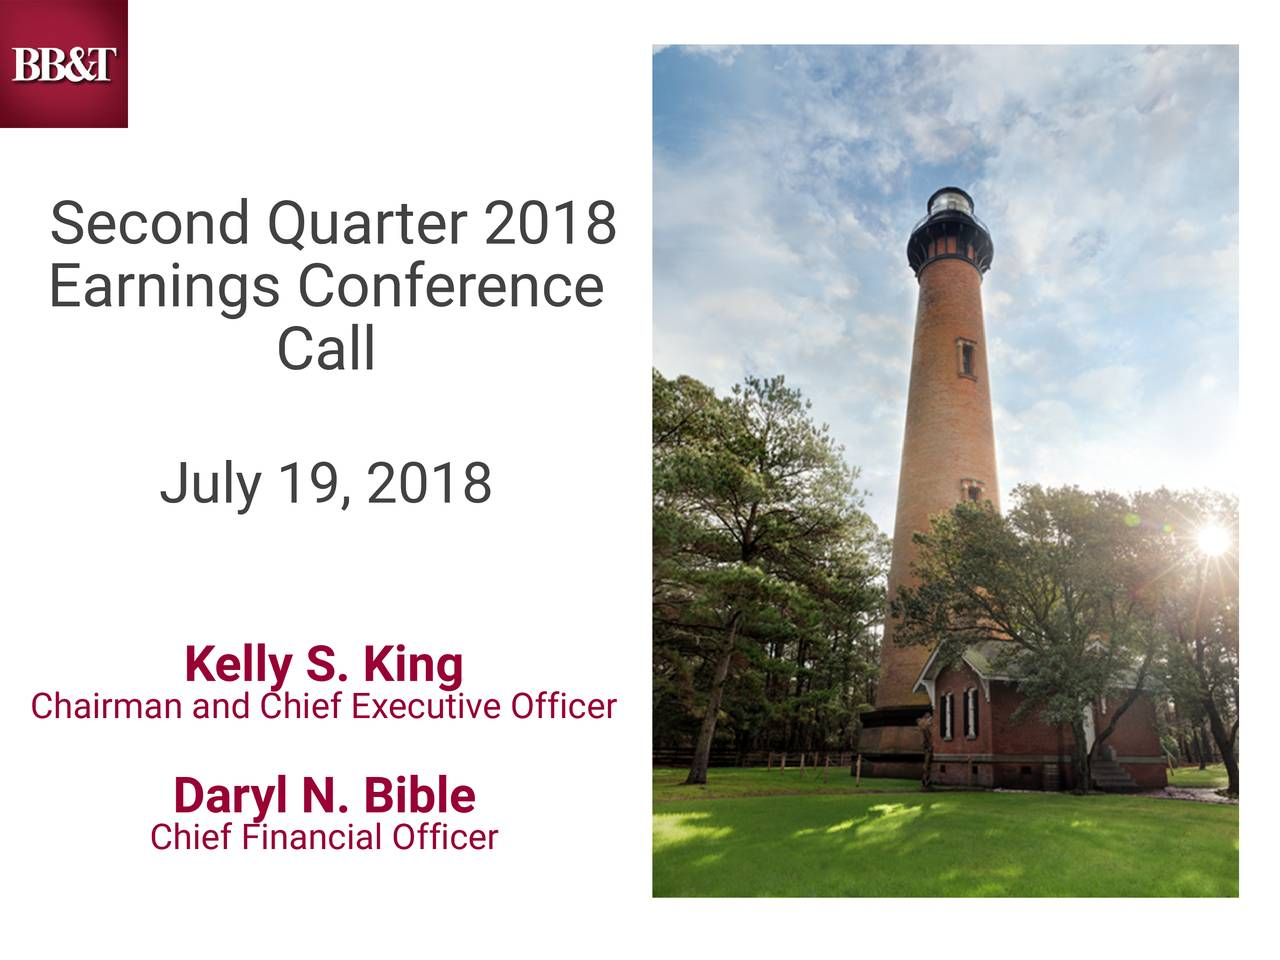 Earnings Conference Call July 19, 2018 Chairman and Chief Executive Officer Daryl N. Bible Chief Financial Officer